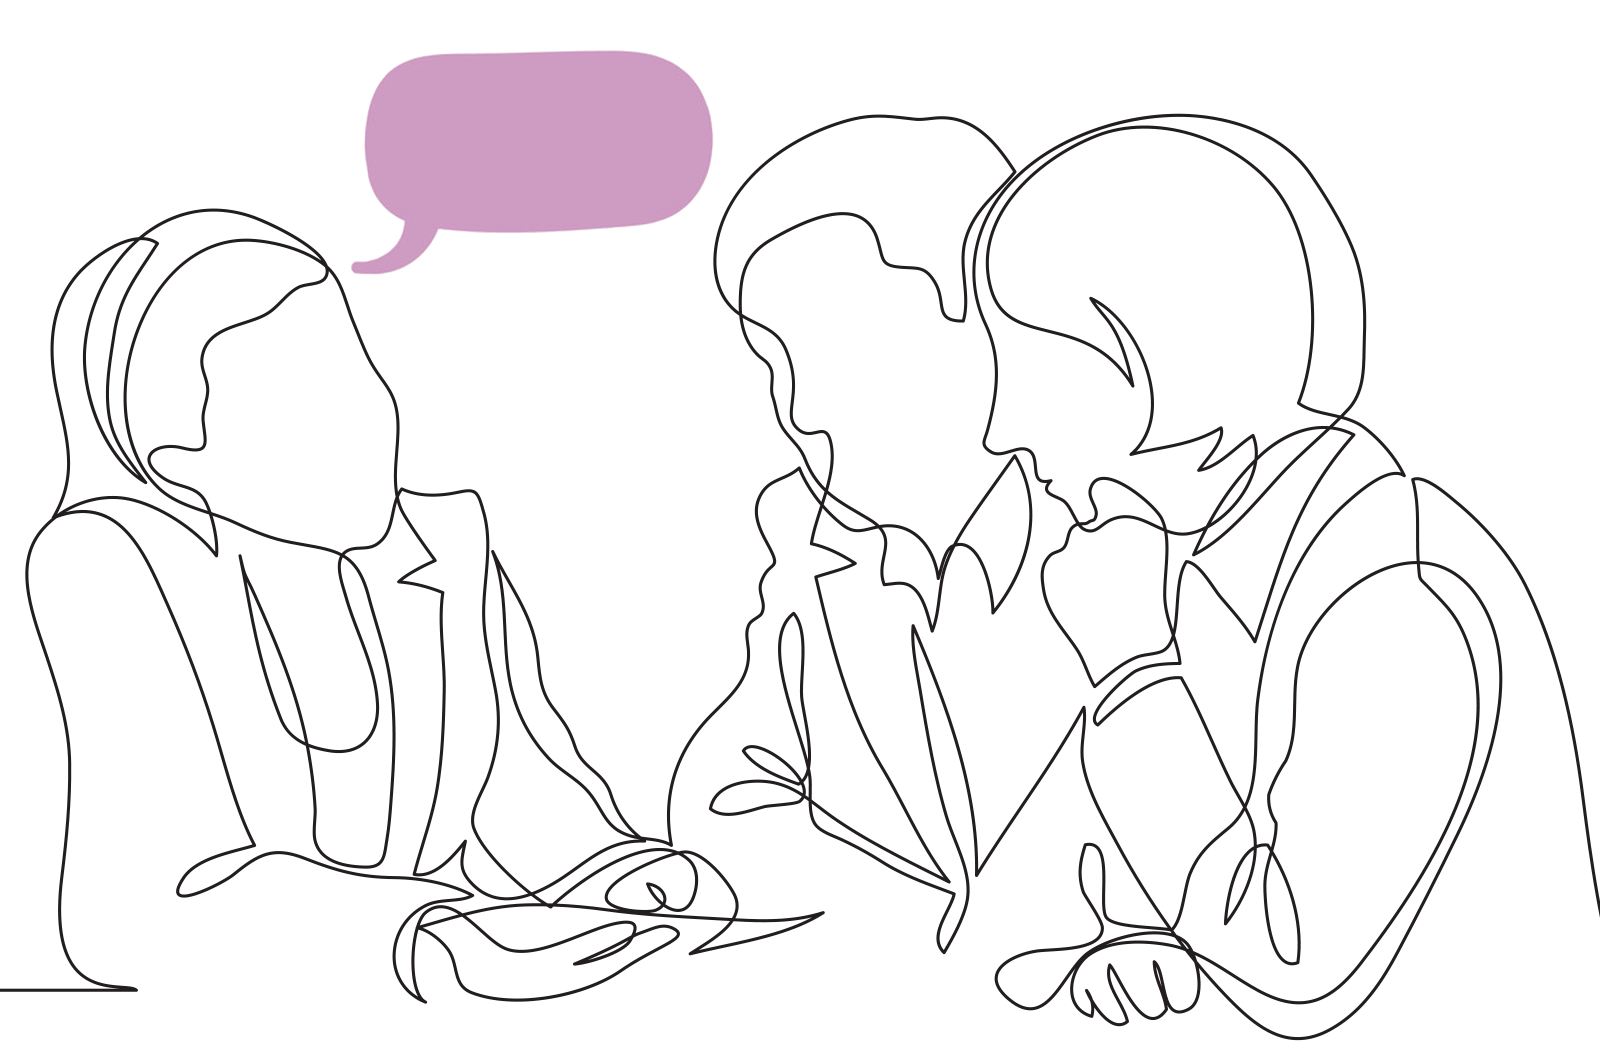 Illustration of three people talking